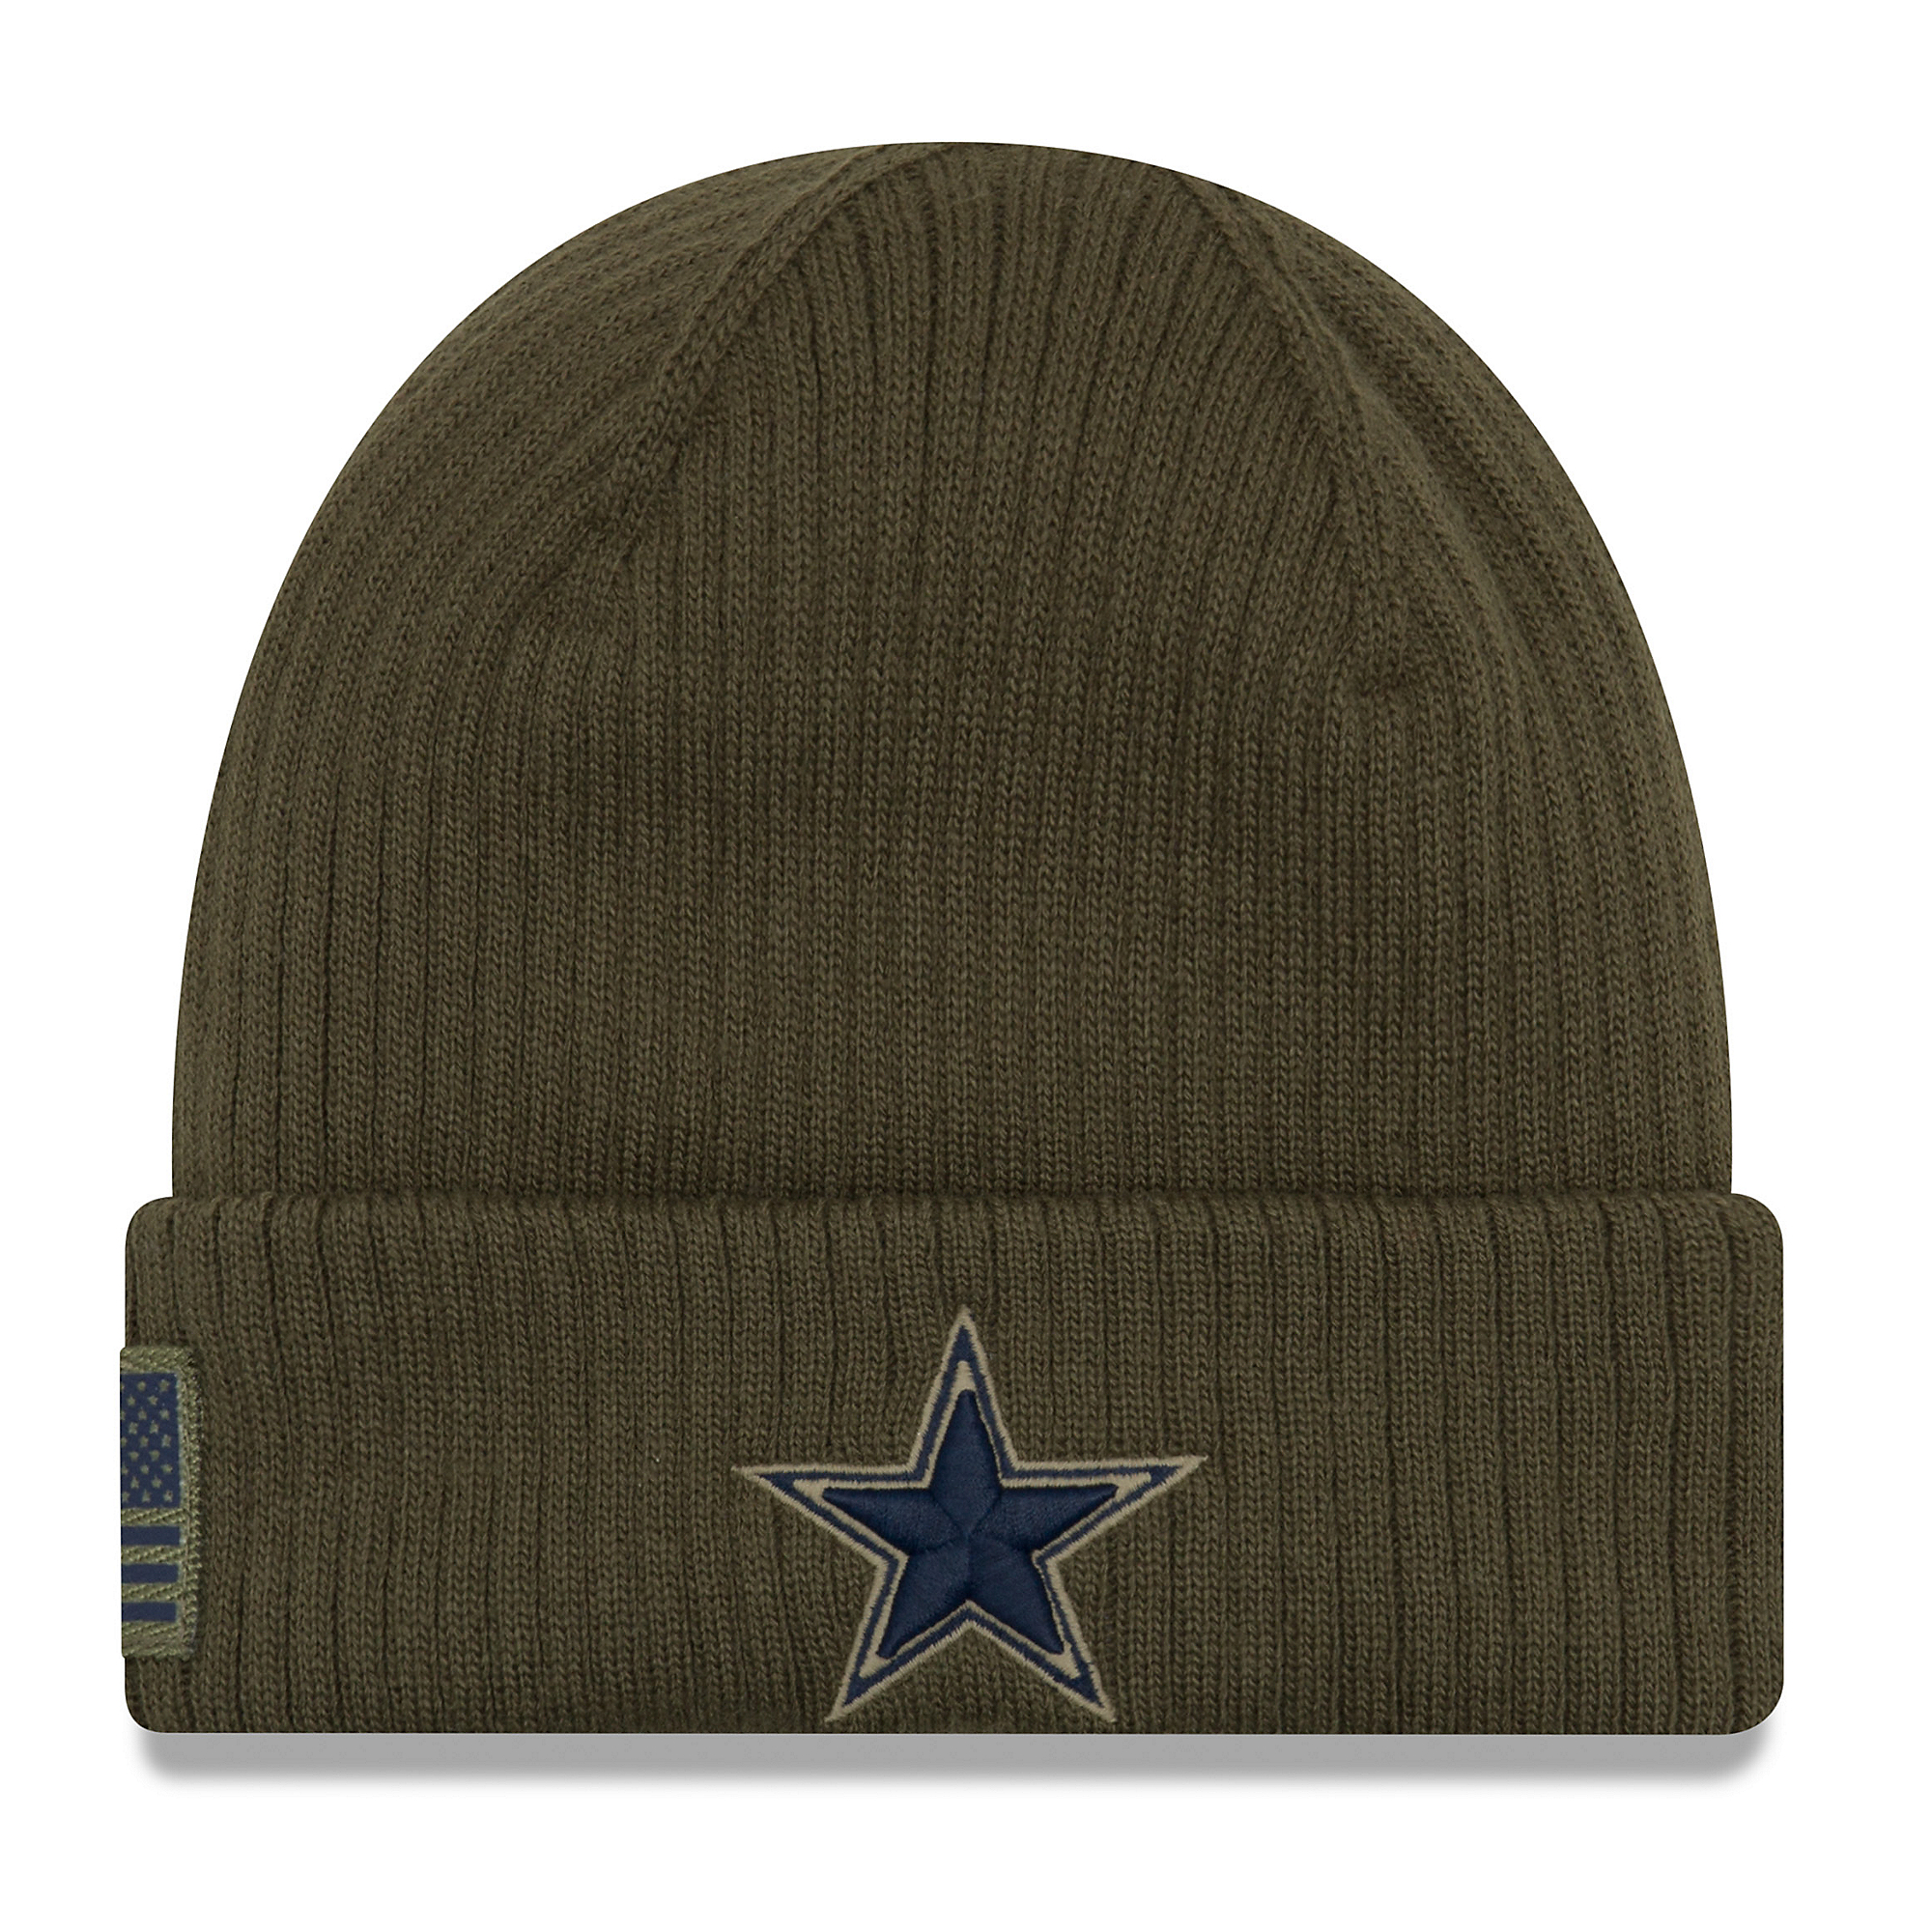 420d34c0f56 Dallas Cowboys New Era Salute to Service Knit Hat